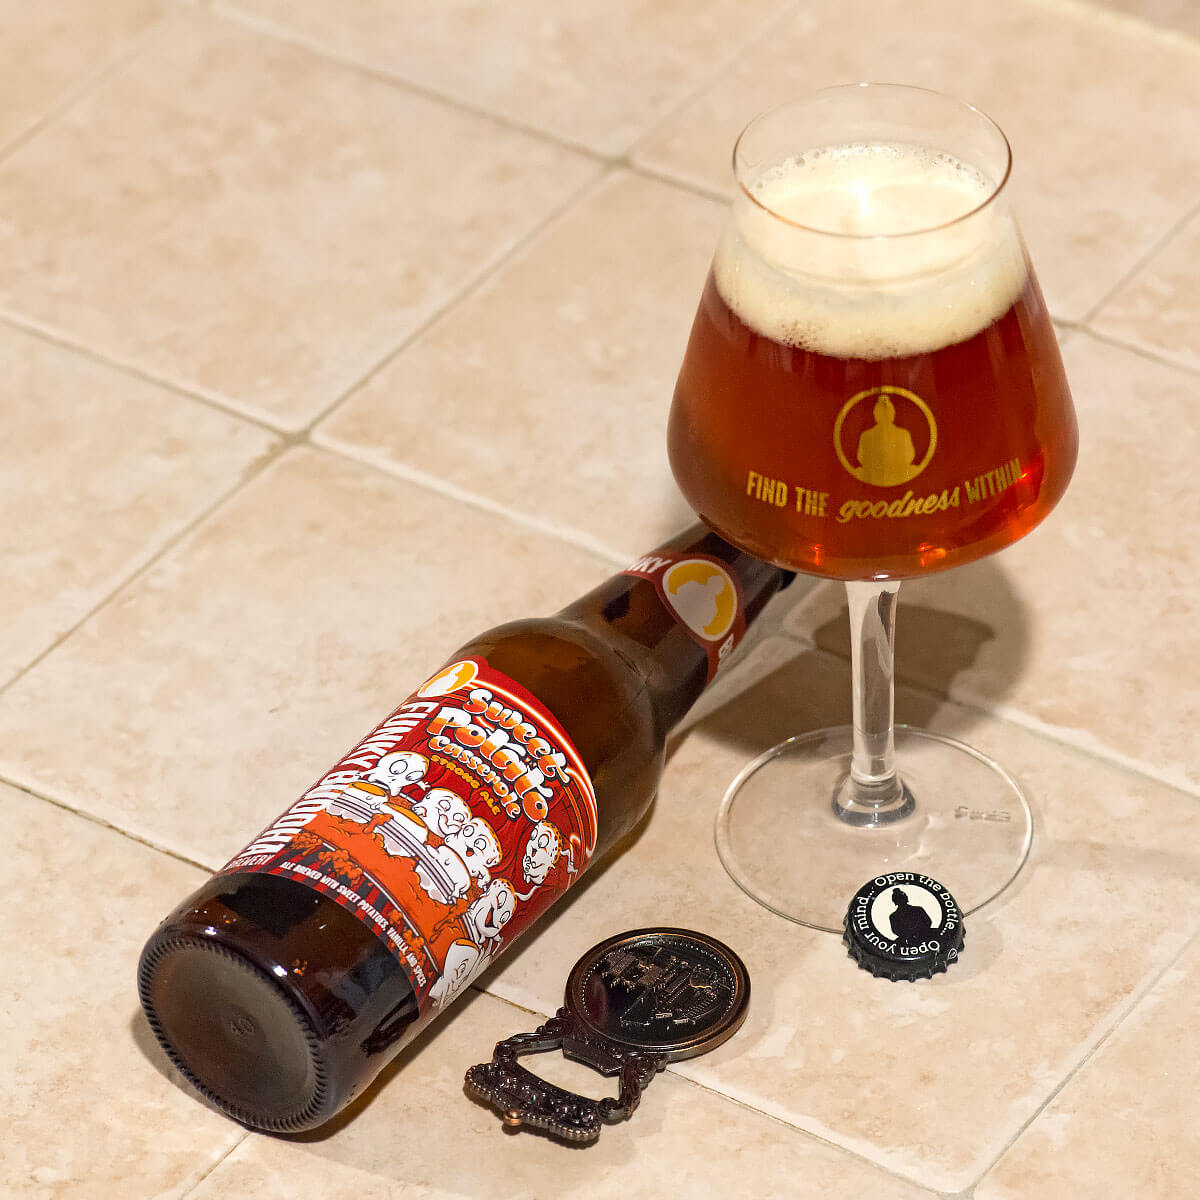 Sweet Potato Casserole, a Fruit Beer by Funky Buddha Brewery